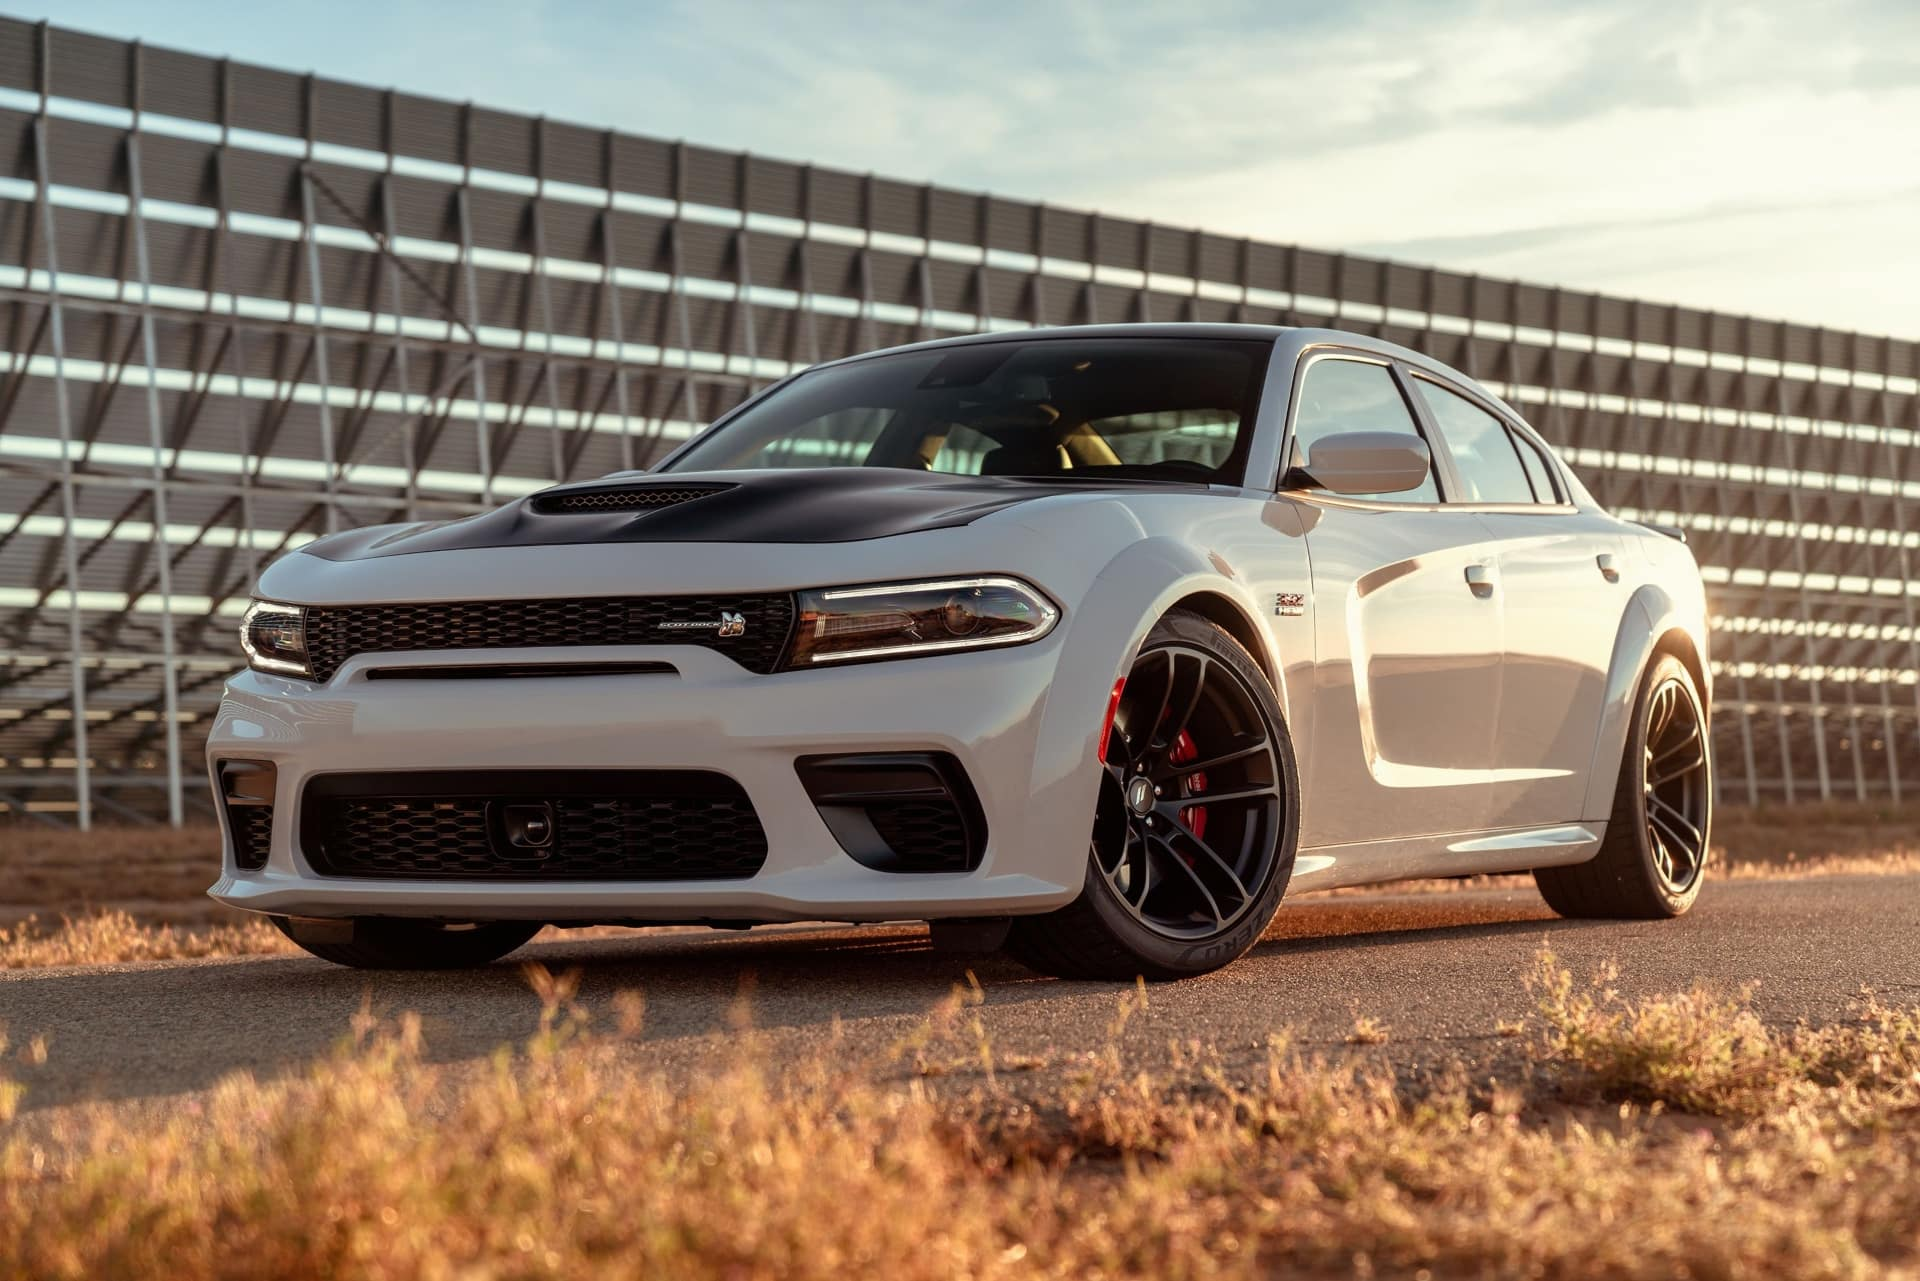 Why The Dodge Charger Is The Best Sedan On The Market